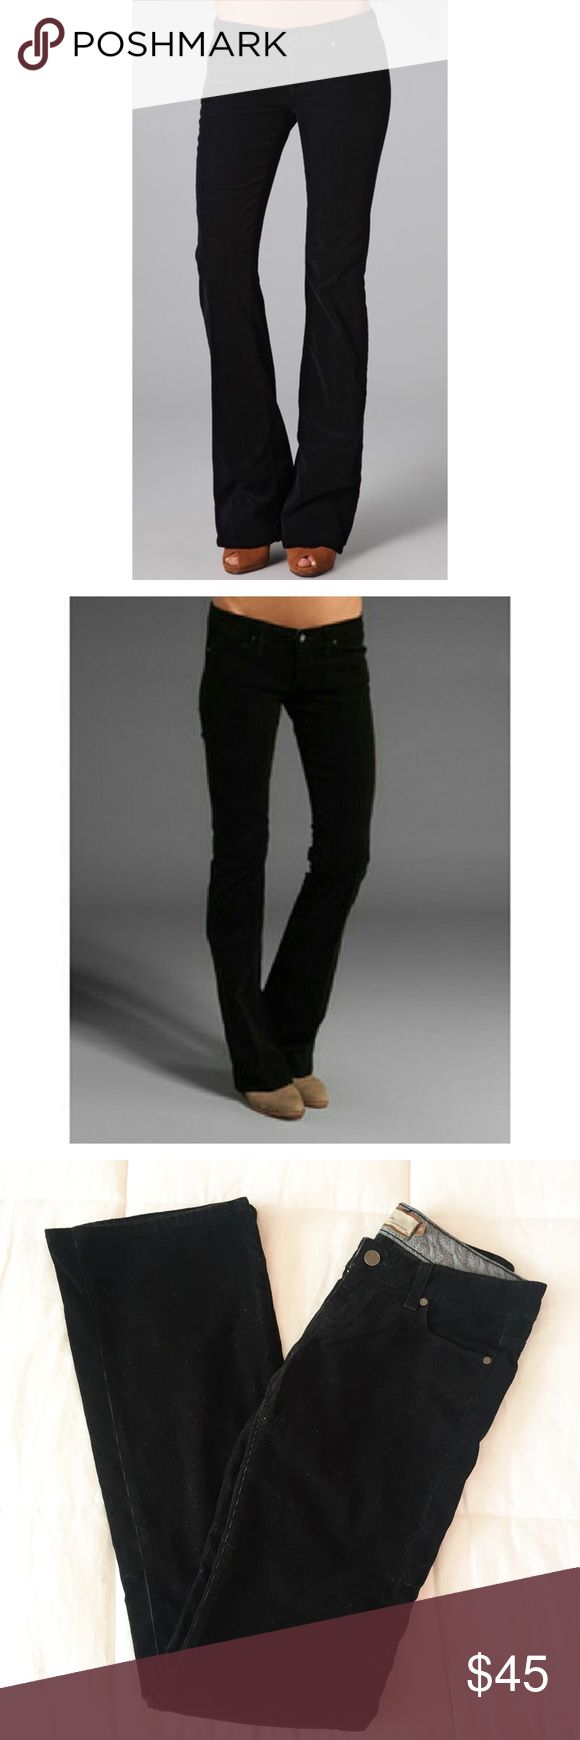 Paige Premium Denim Black Corduroy Flare Bottom Cutest trendy look right now. Flare leg, corduroy feel. Black. Cute back pocket design. Lightly worn, in excellent condition. Size 26 Paige Jeans Pants Boot Cut & Flare